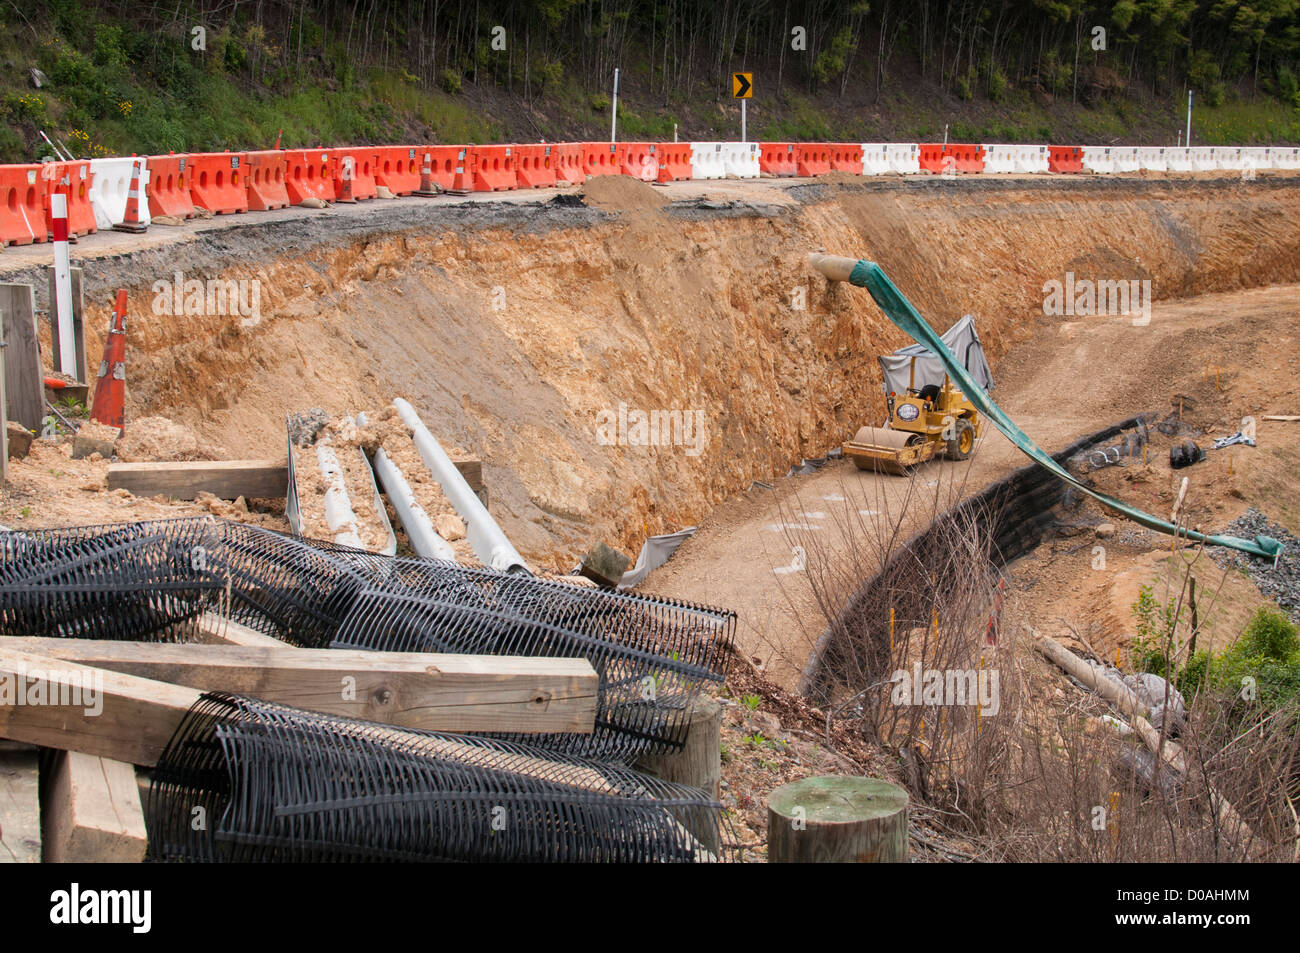 Road construction works on State Highway 27, North Island, New Zealand. - Stock Image